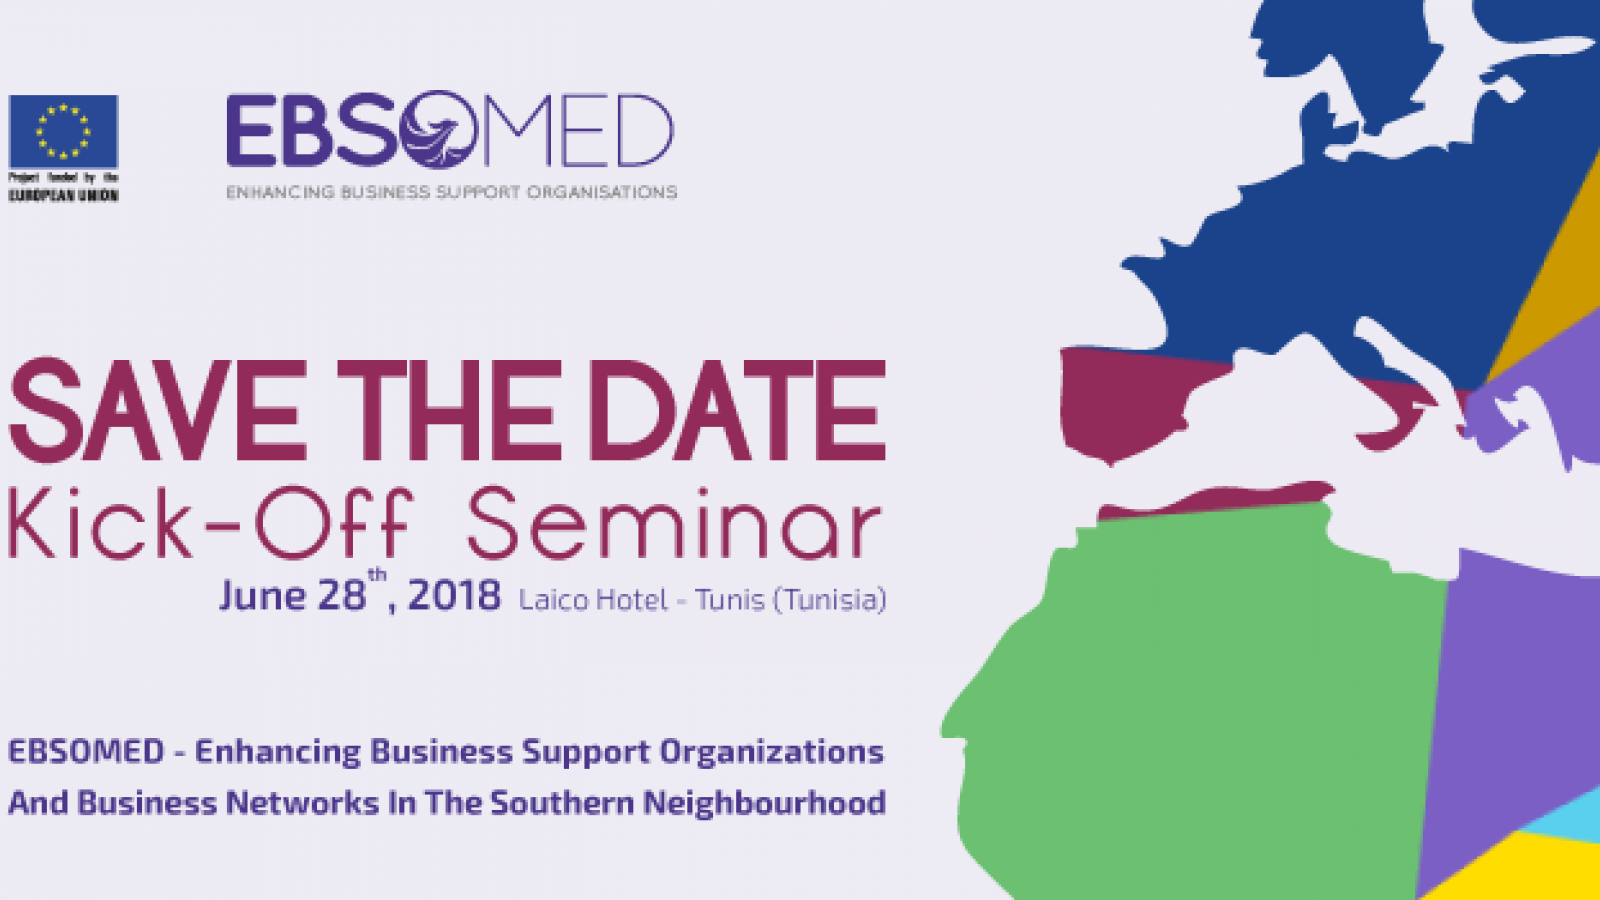 EBSOMED project to kick off in June in Tunis